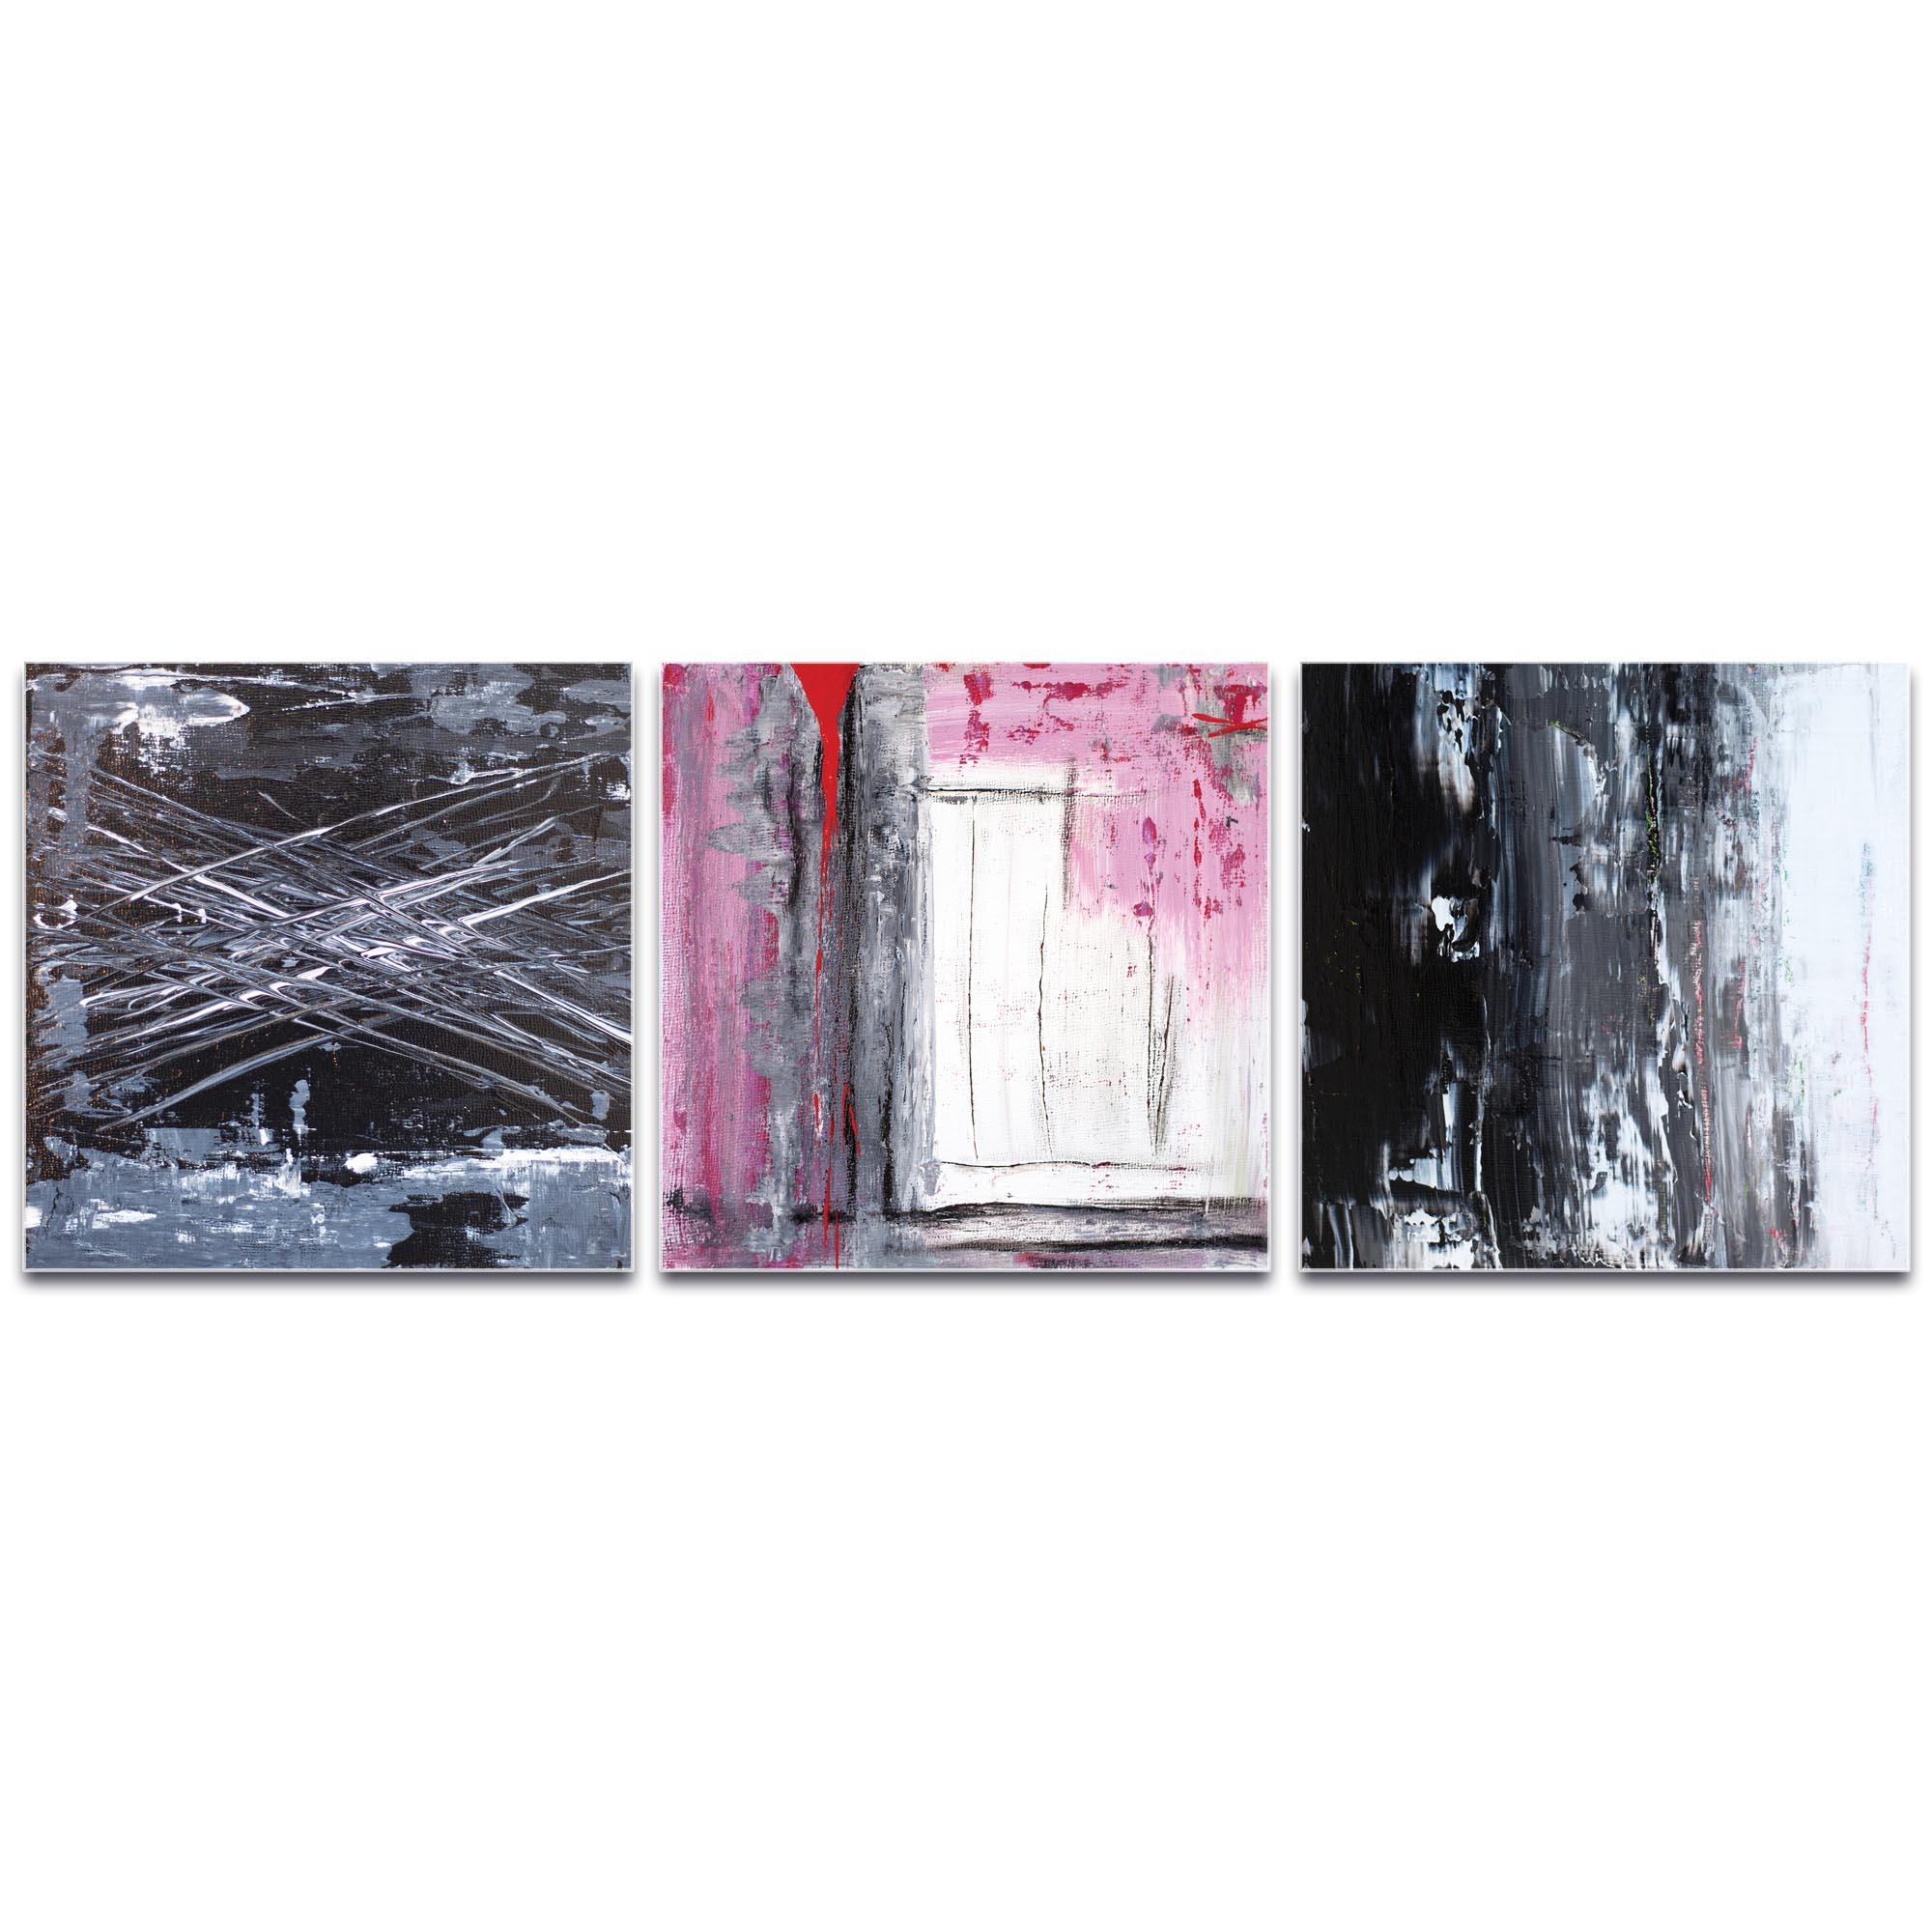 Abstract Wall Art 'Urban Triptych 6' - Urban Decor on Metal or Plexiglass - Image 2